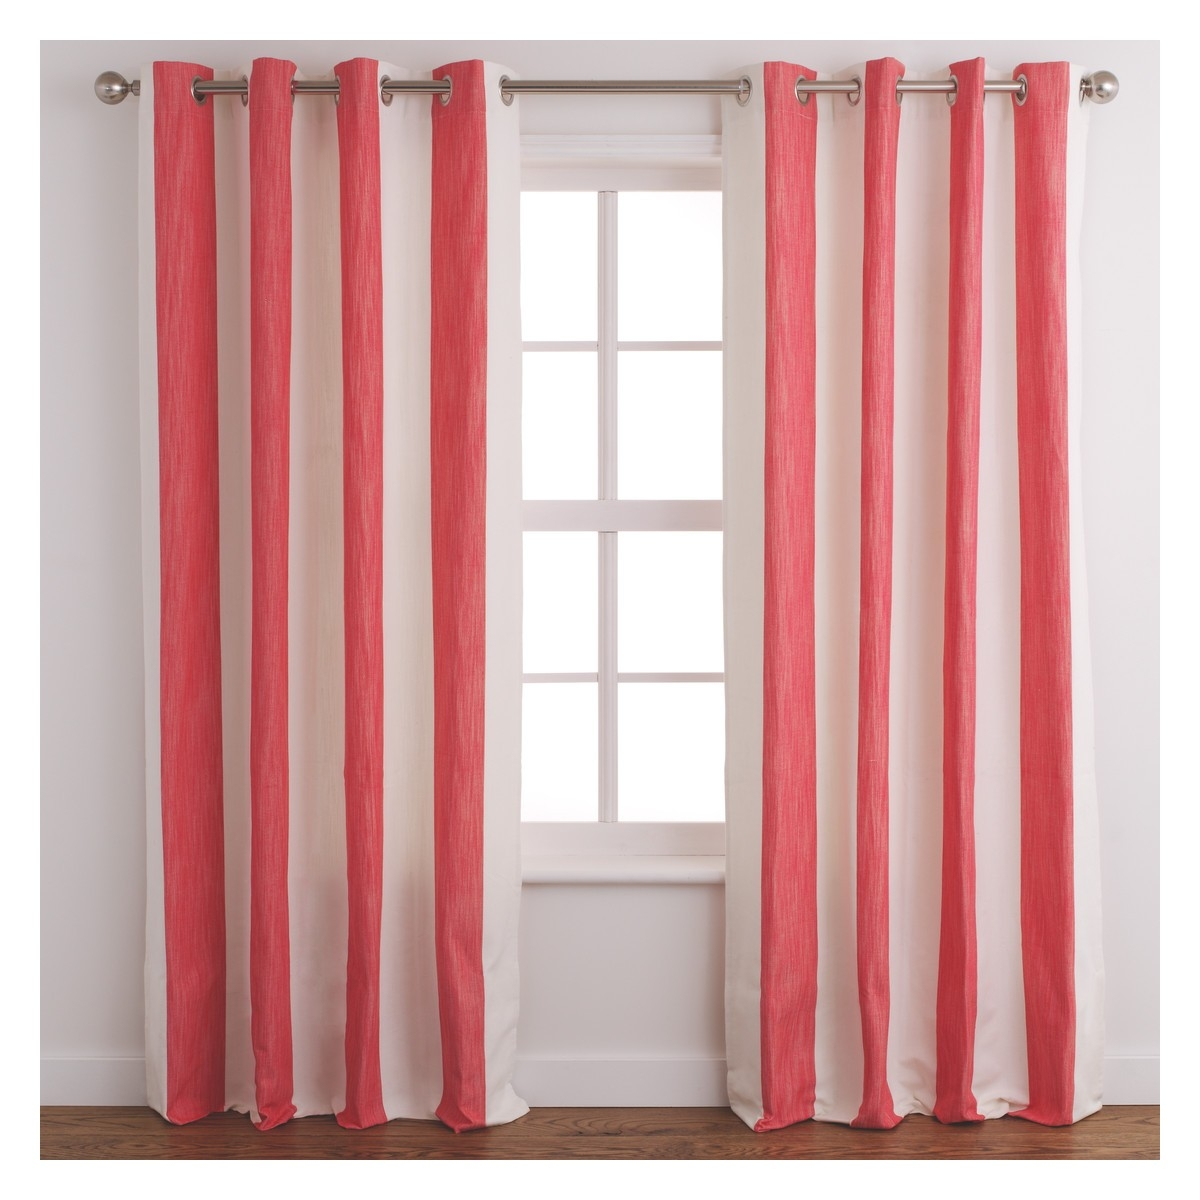 Next Red Striped Curtains Curtain Menzilperde Within Stripe Curtains (Image 20 of 25)